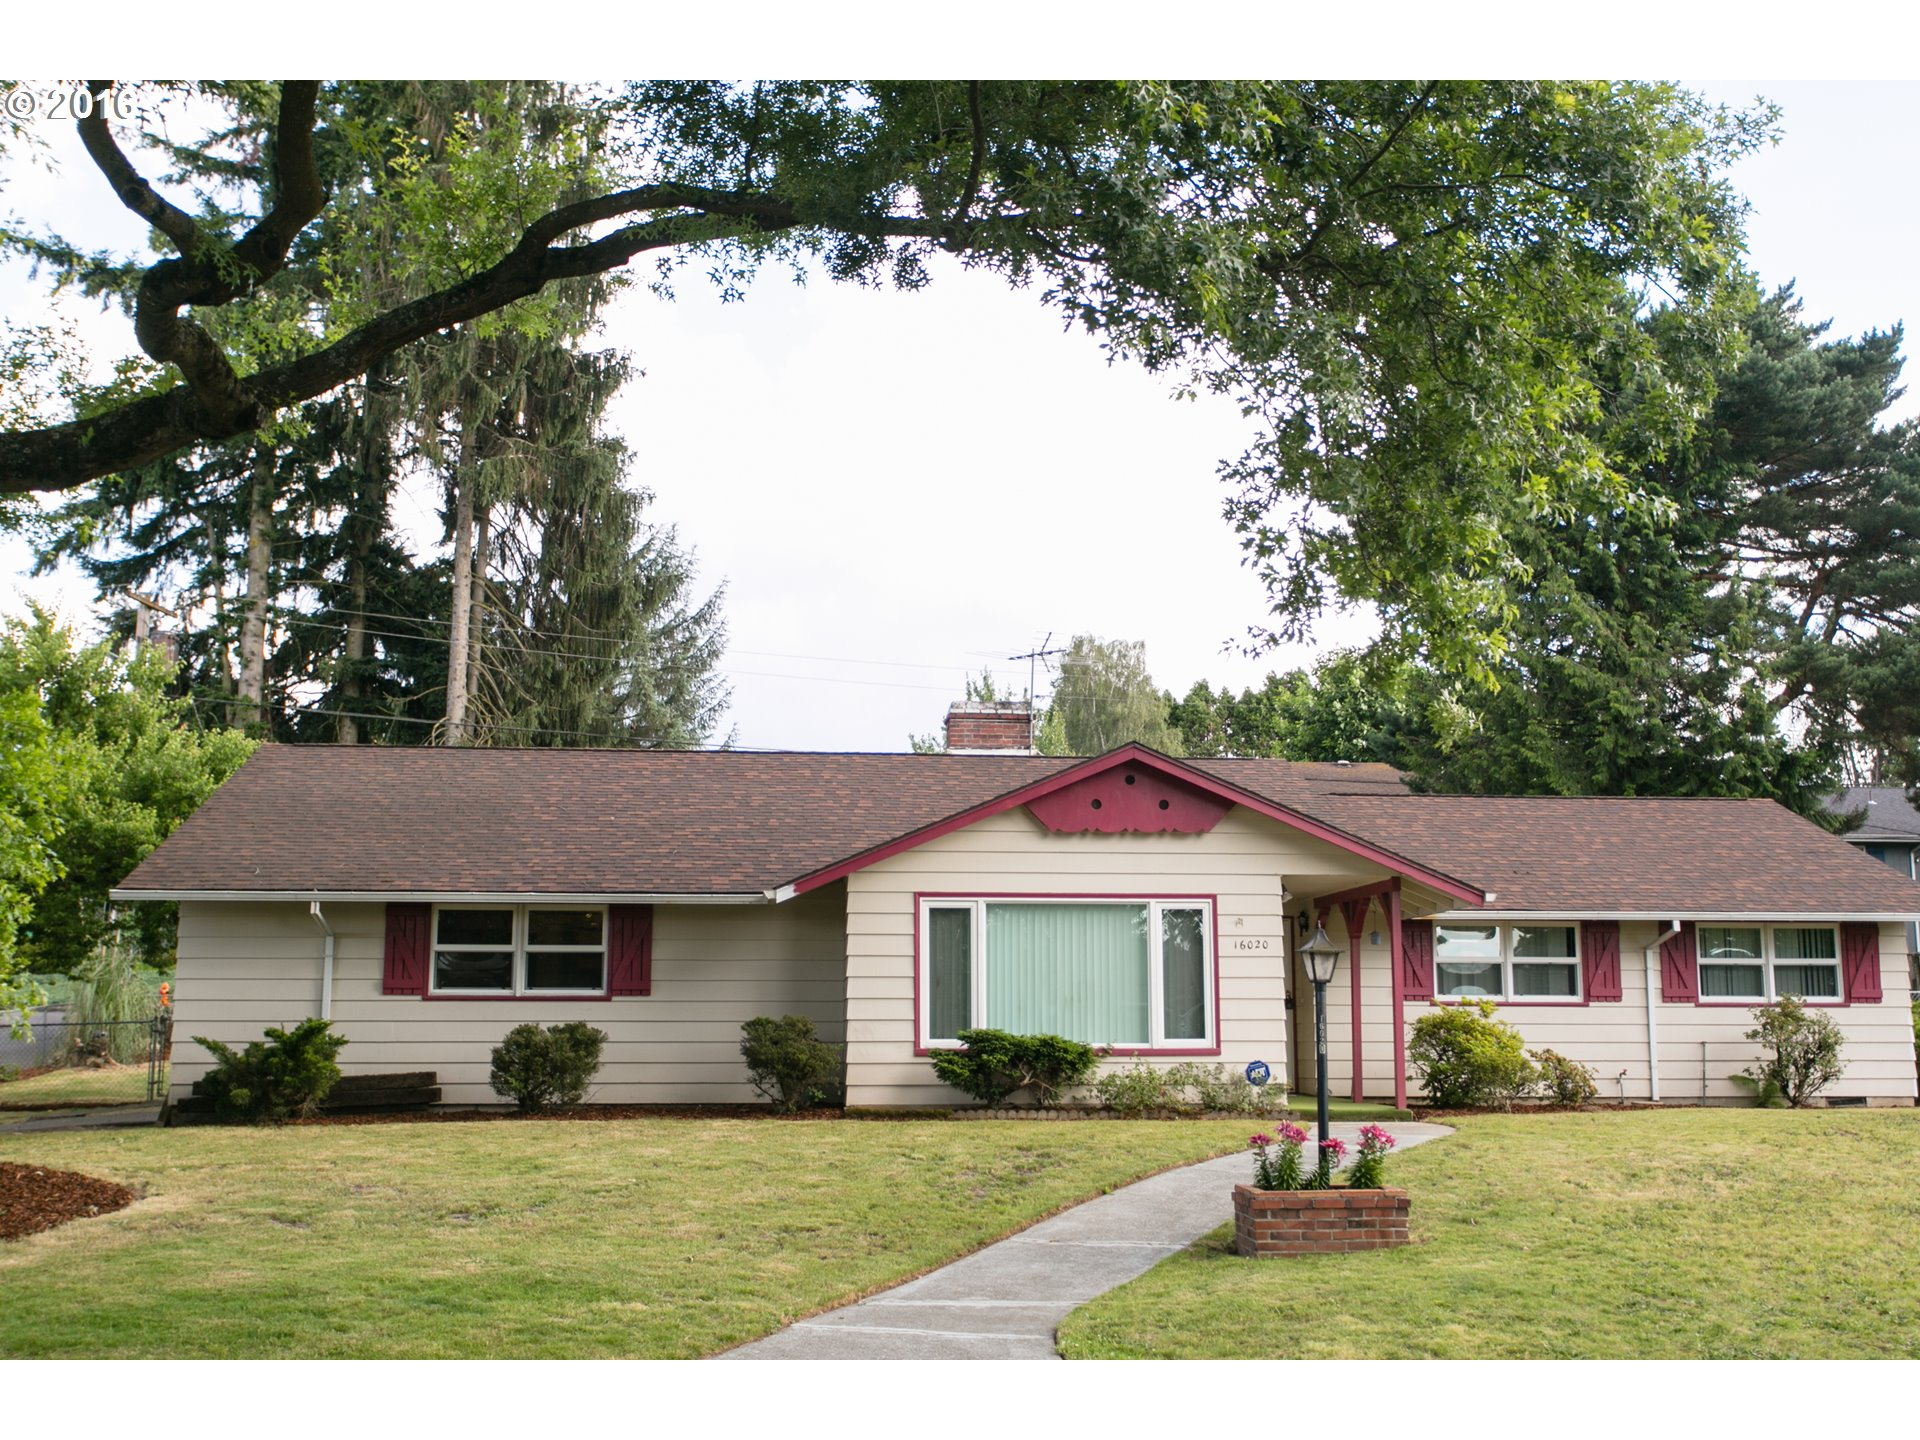 1770 sq. ft 3 bedrooms 2 bathrooms  House , Portland, OR